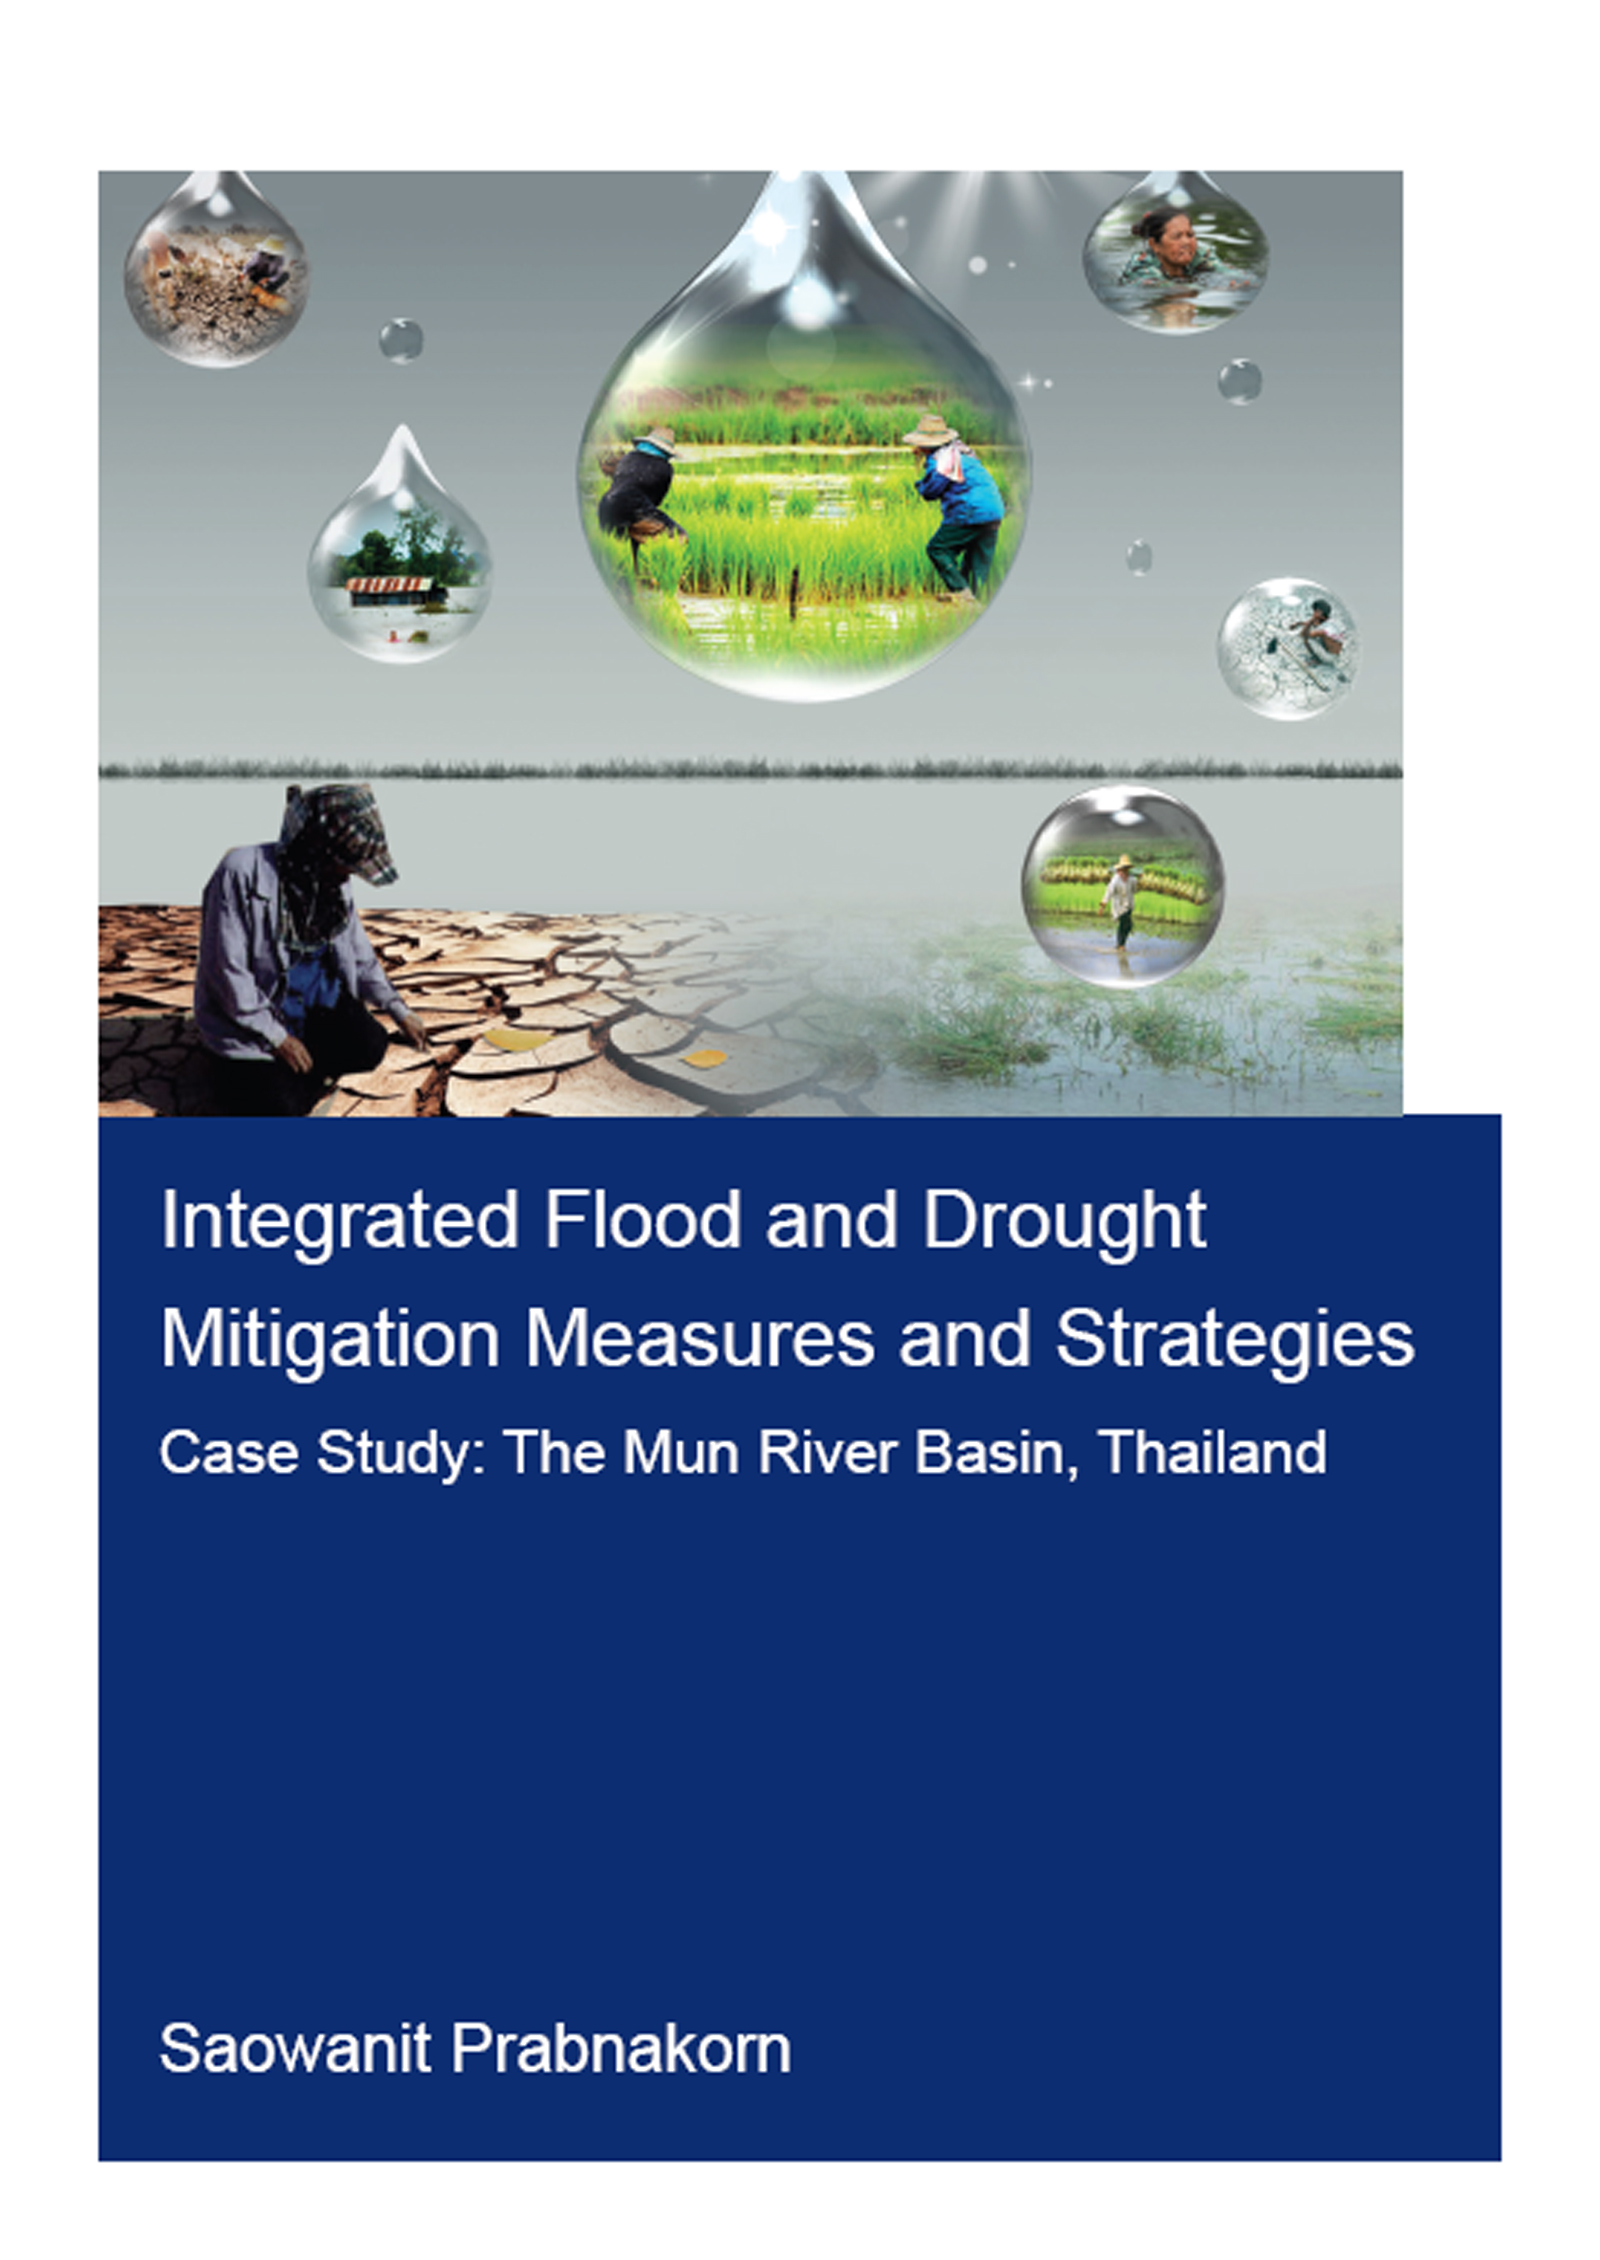 Integrated Flood and Drought Mitigation Mesures and Strategies. Case Study: The Mun River Basin, Thailand book cover